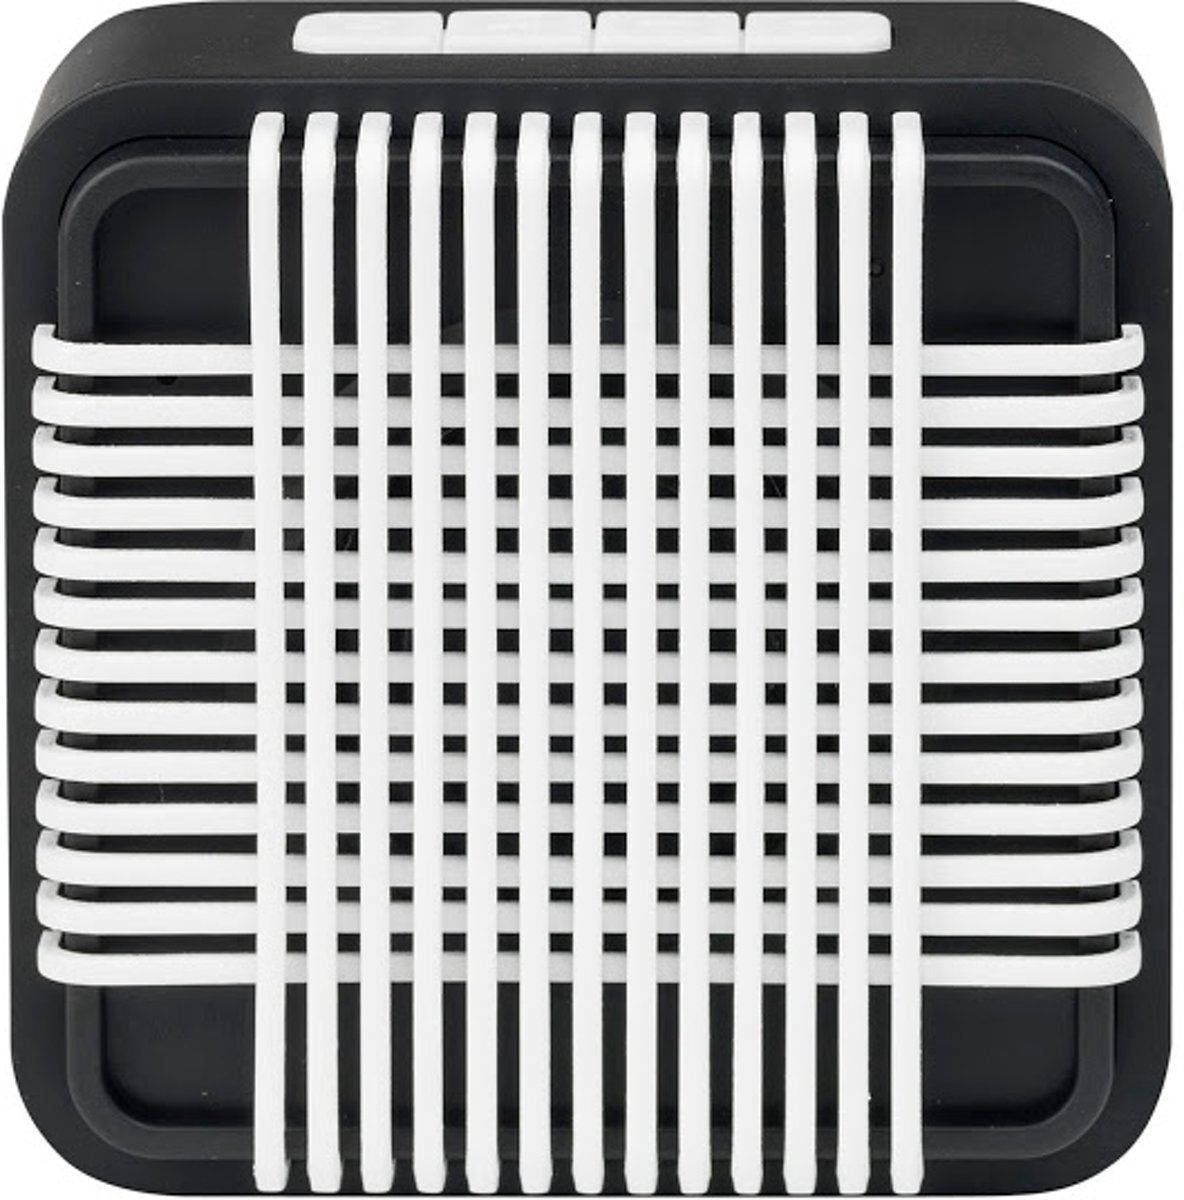 Soundcrush HR 910 - Bluetooth speaker - Wit kopen